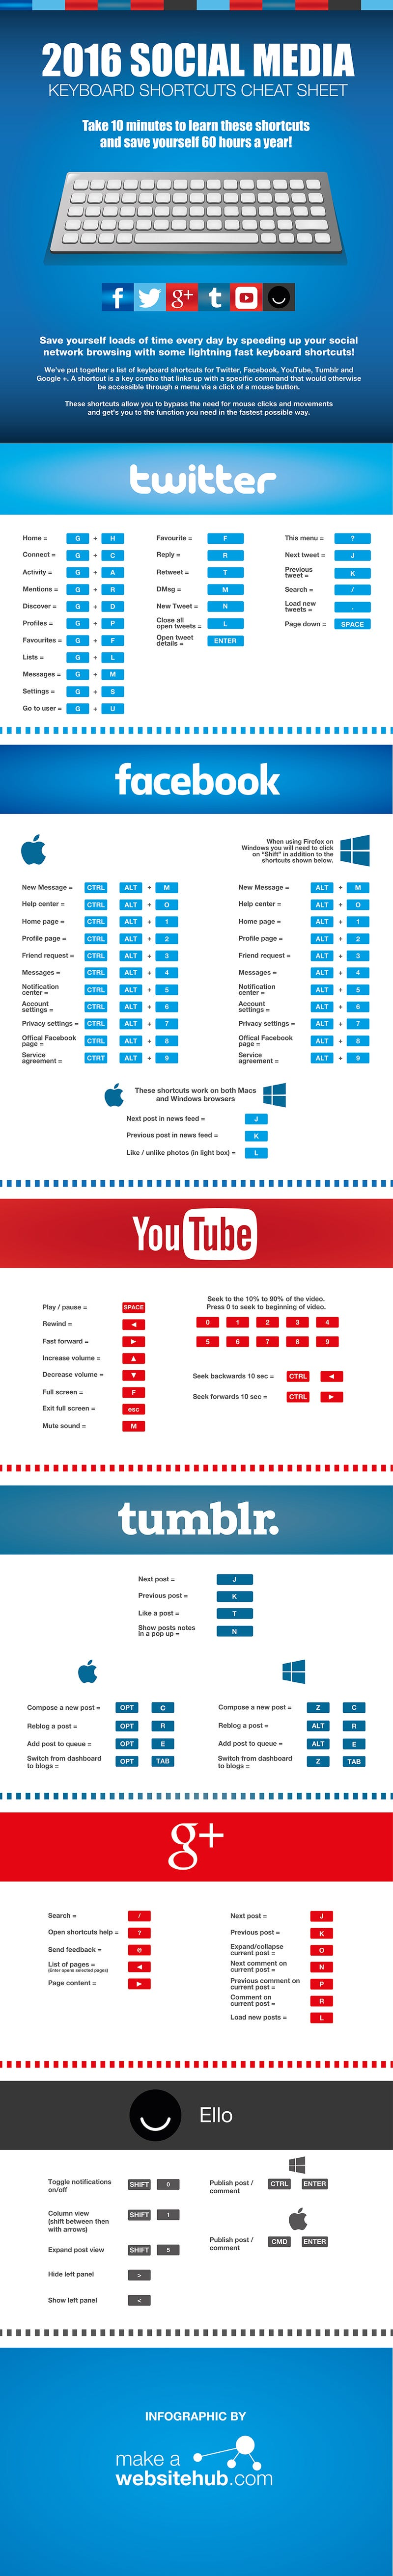 This Cheat Sheet Is Full of Shortcuts for Facebook, Twitter, YouTube, and More